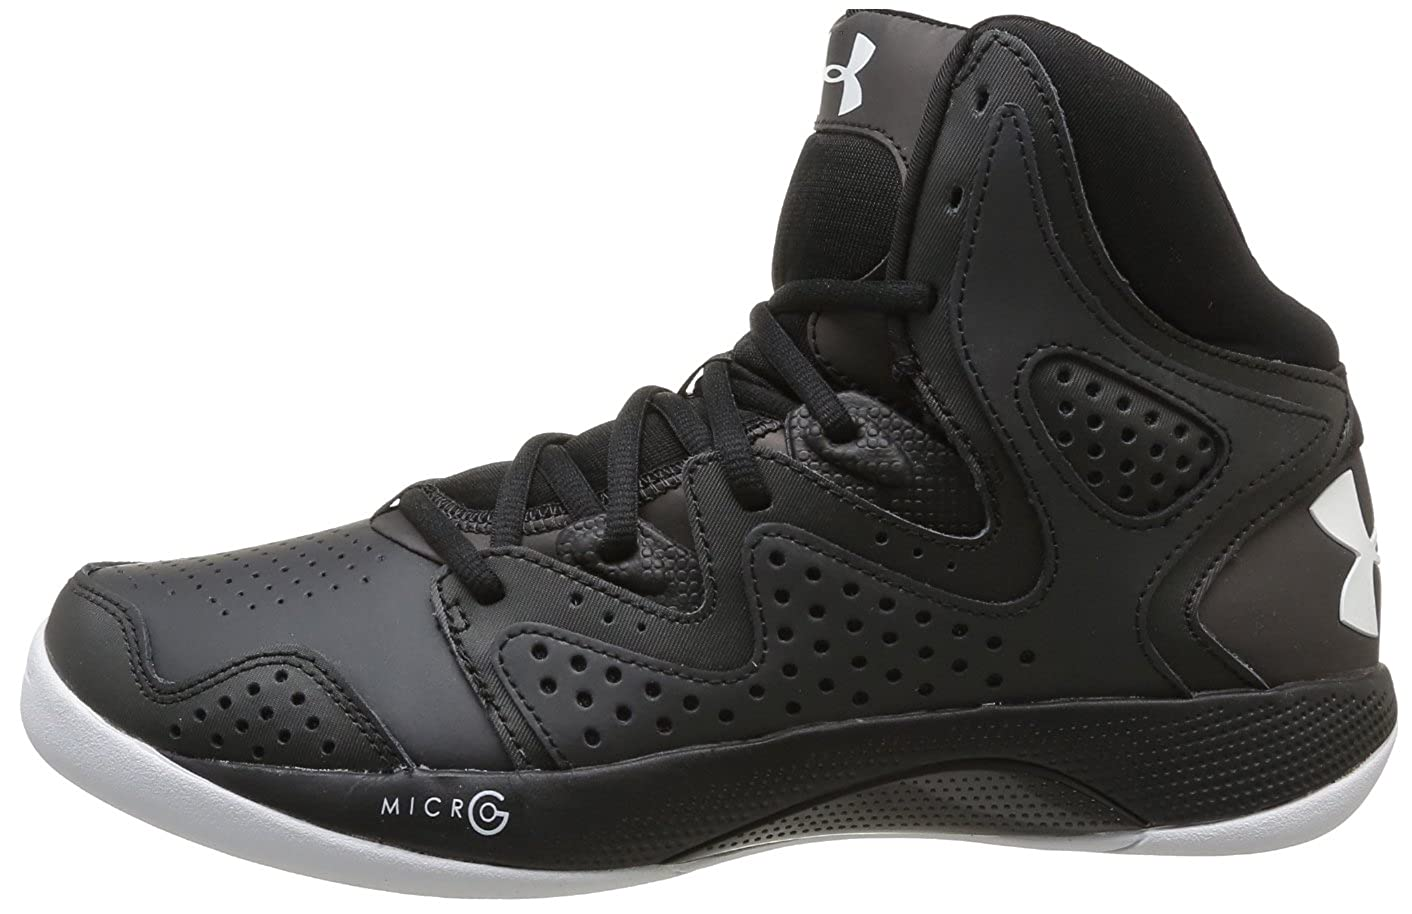 99305bc3 Under Armour Men's UA Micro G® Torch 2 Basketball Shoes 13 Black ...